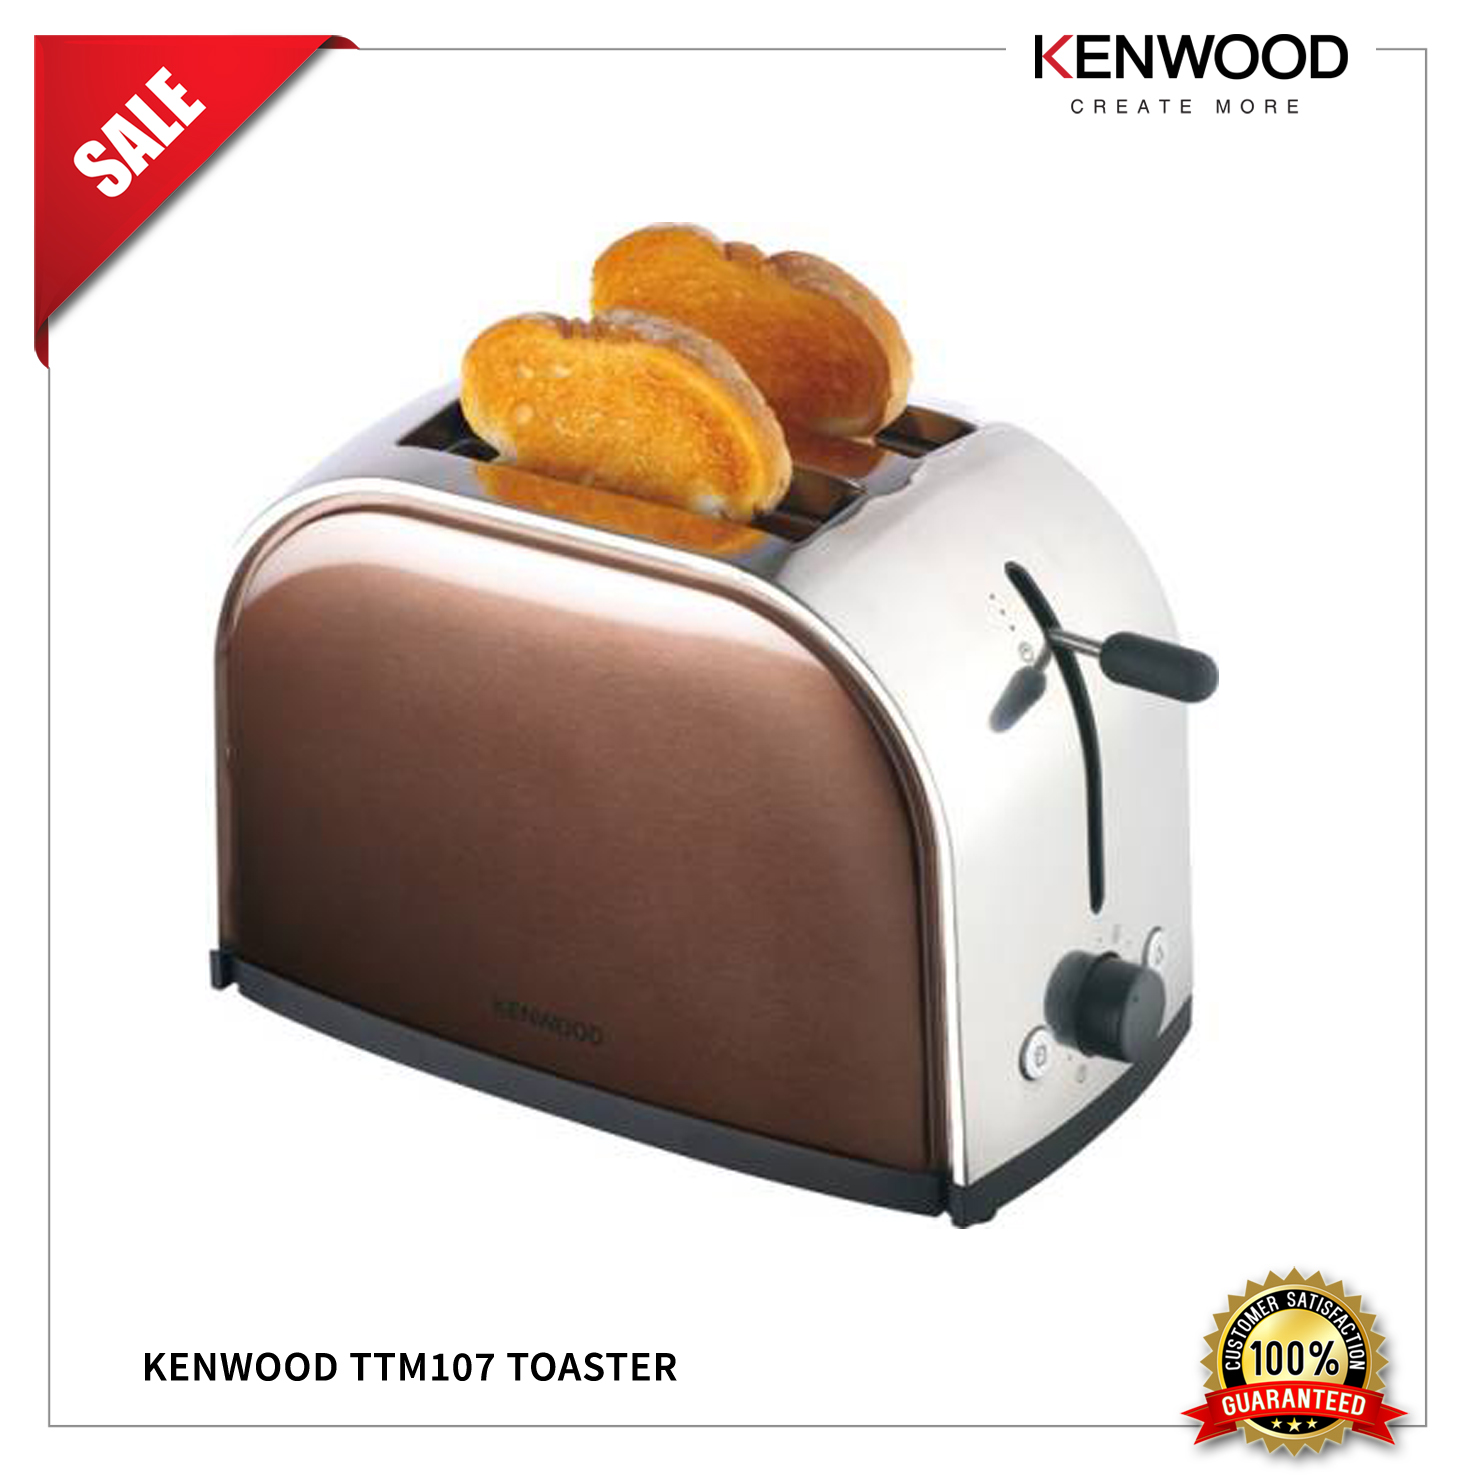 KENWOOD_TTM107_2 SL_P&V+ECO_ANTIQUE BRONZ – REVISI 2